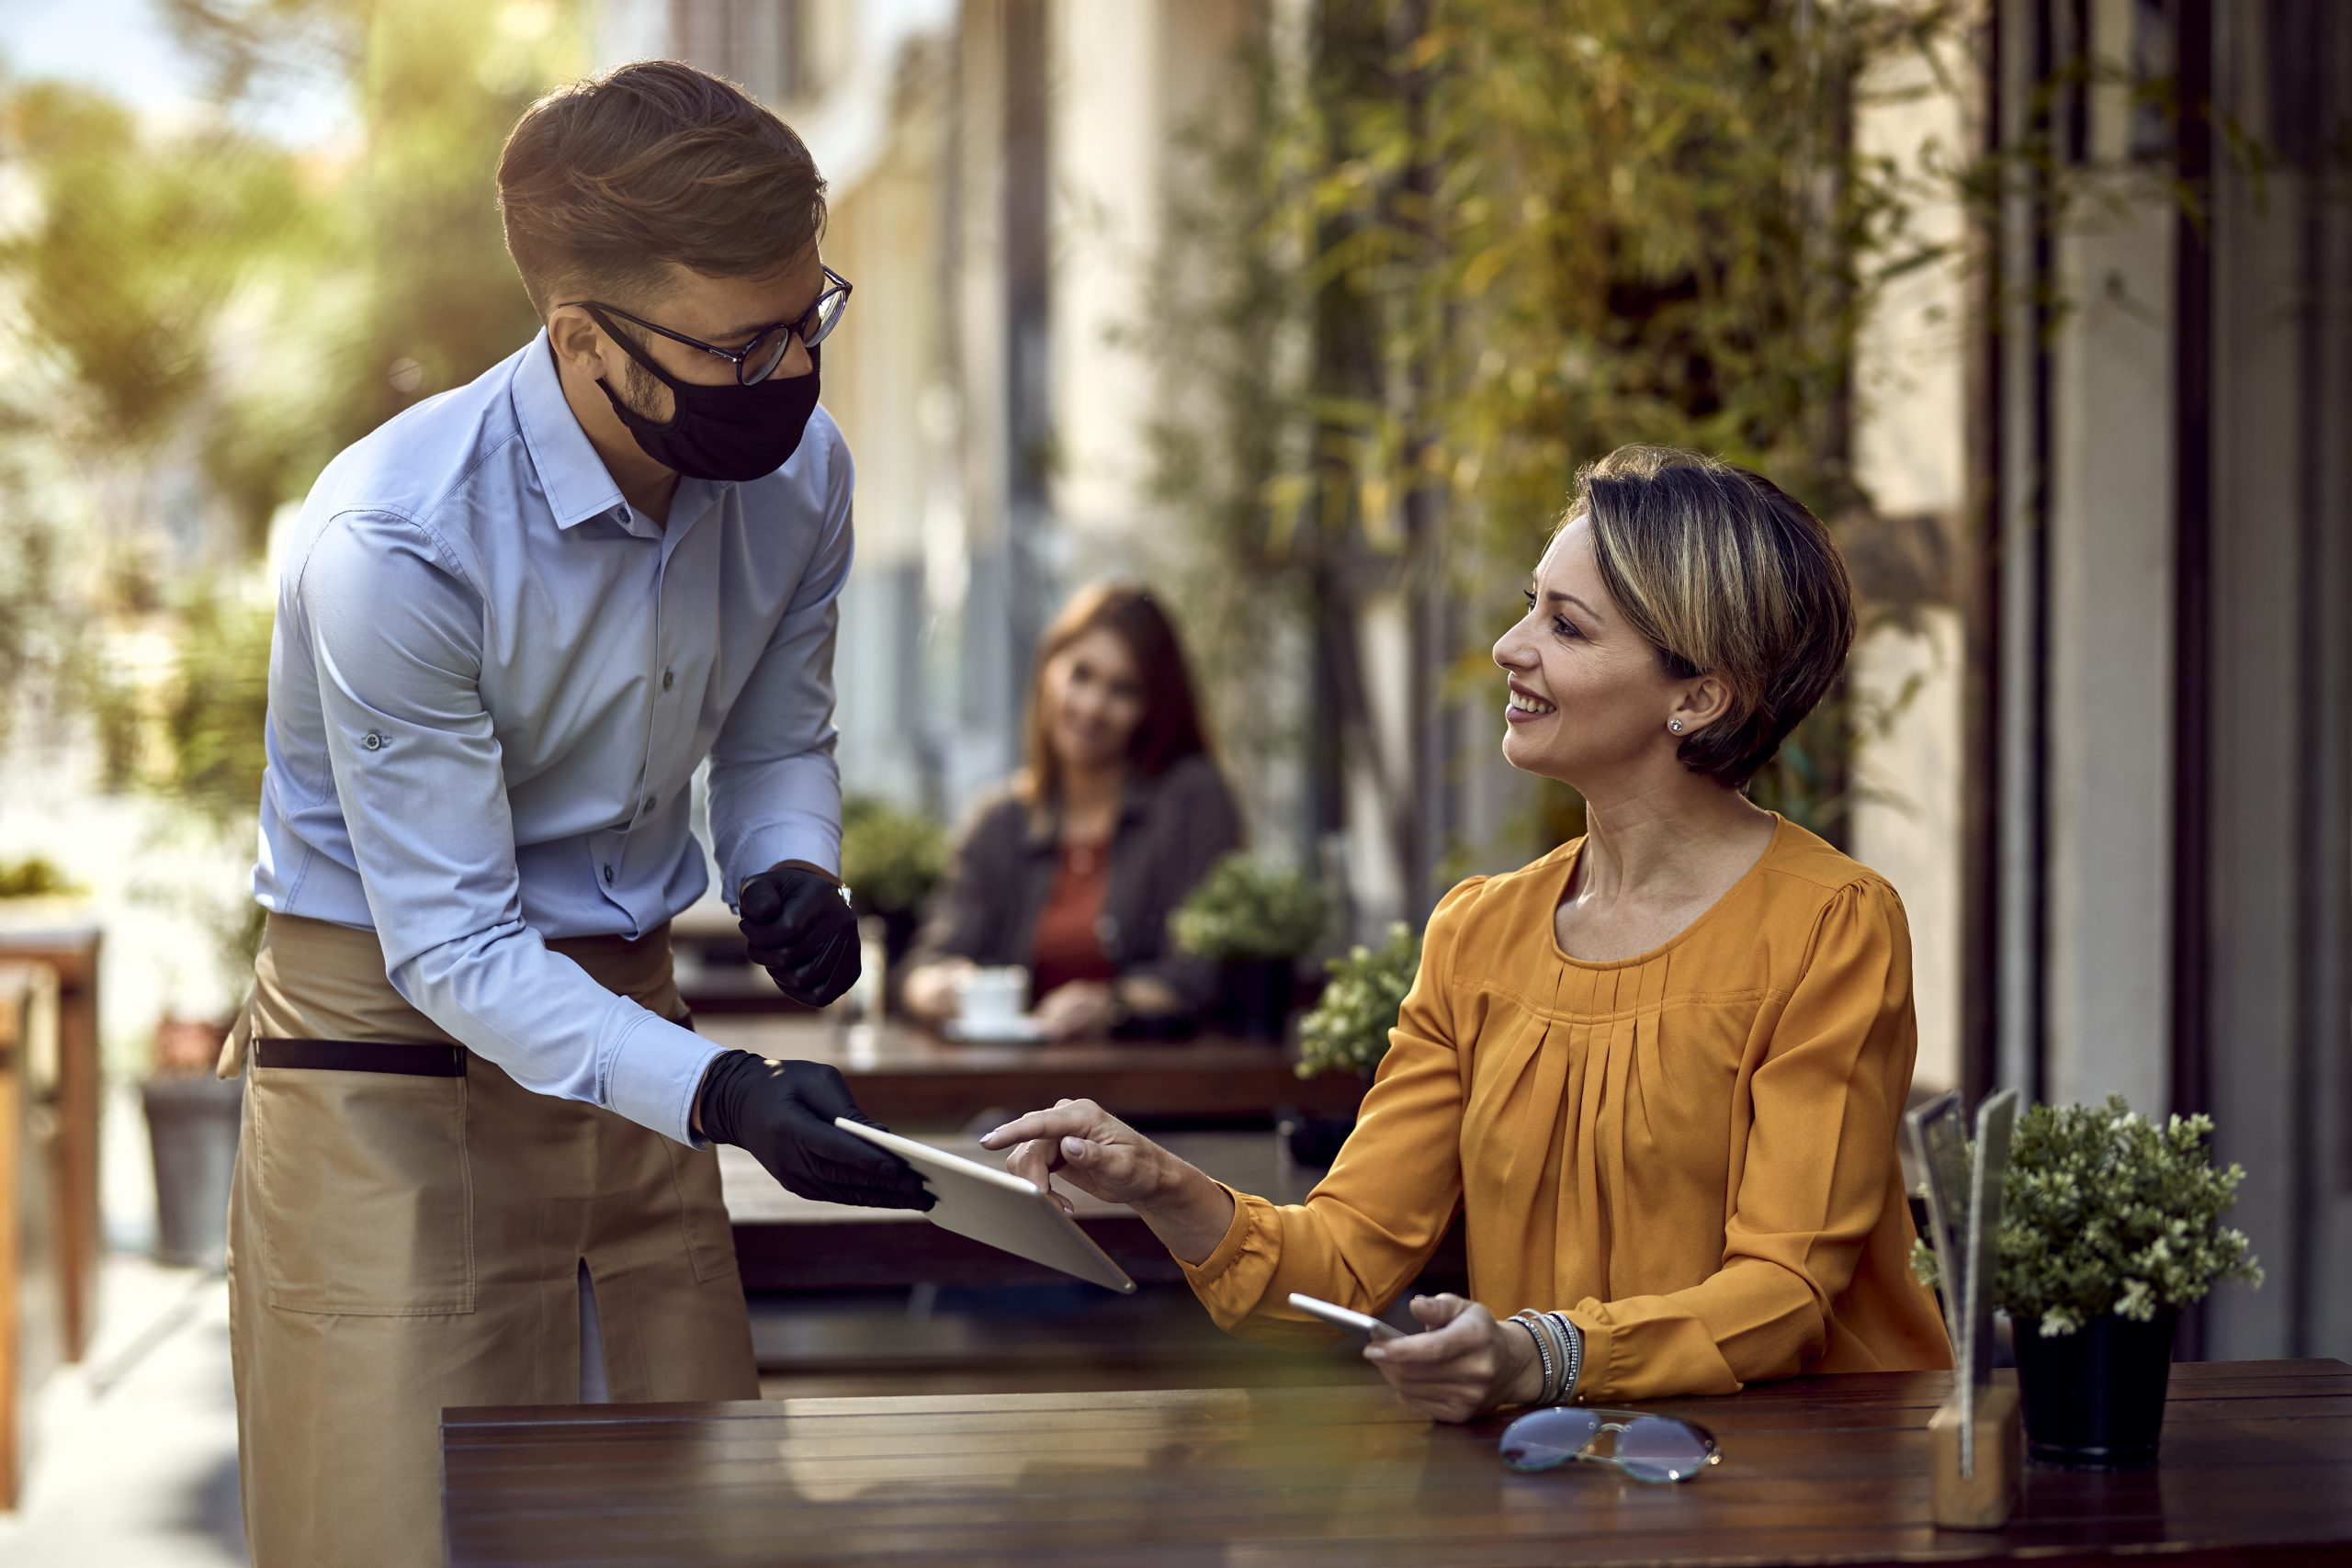 waiter serving woman: hospitality in crisis with staggering number of roles unfilled